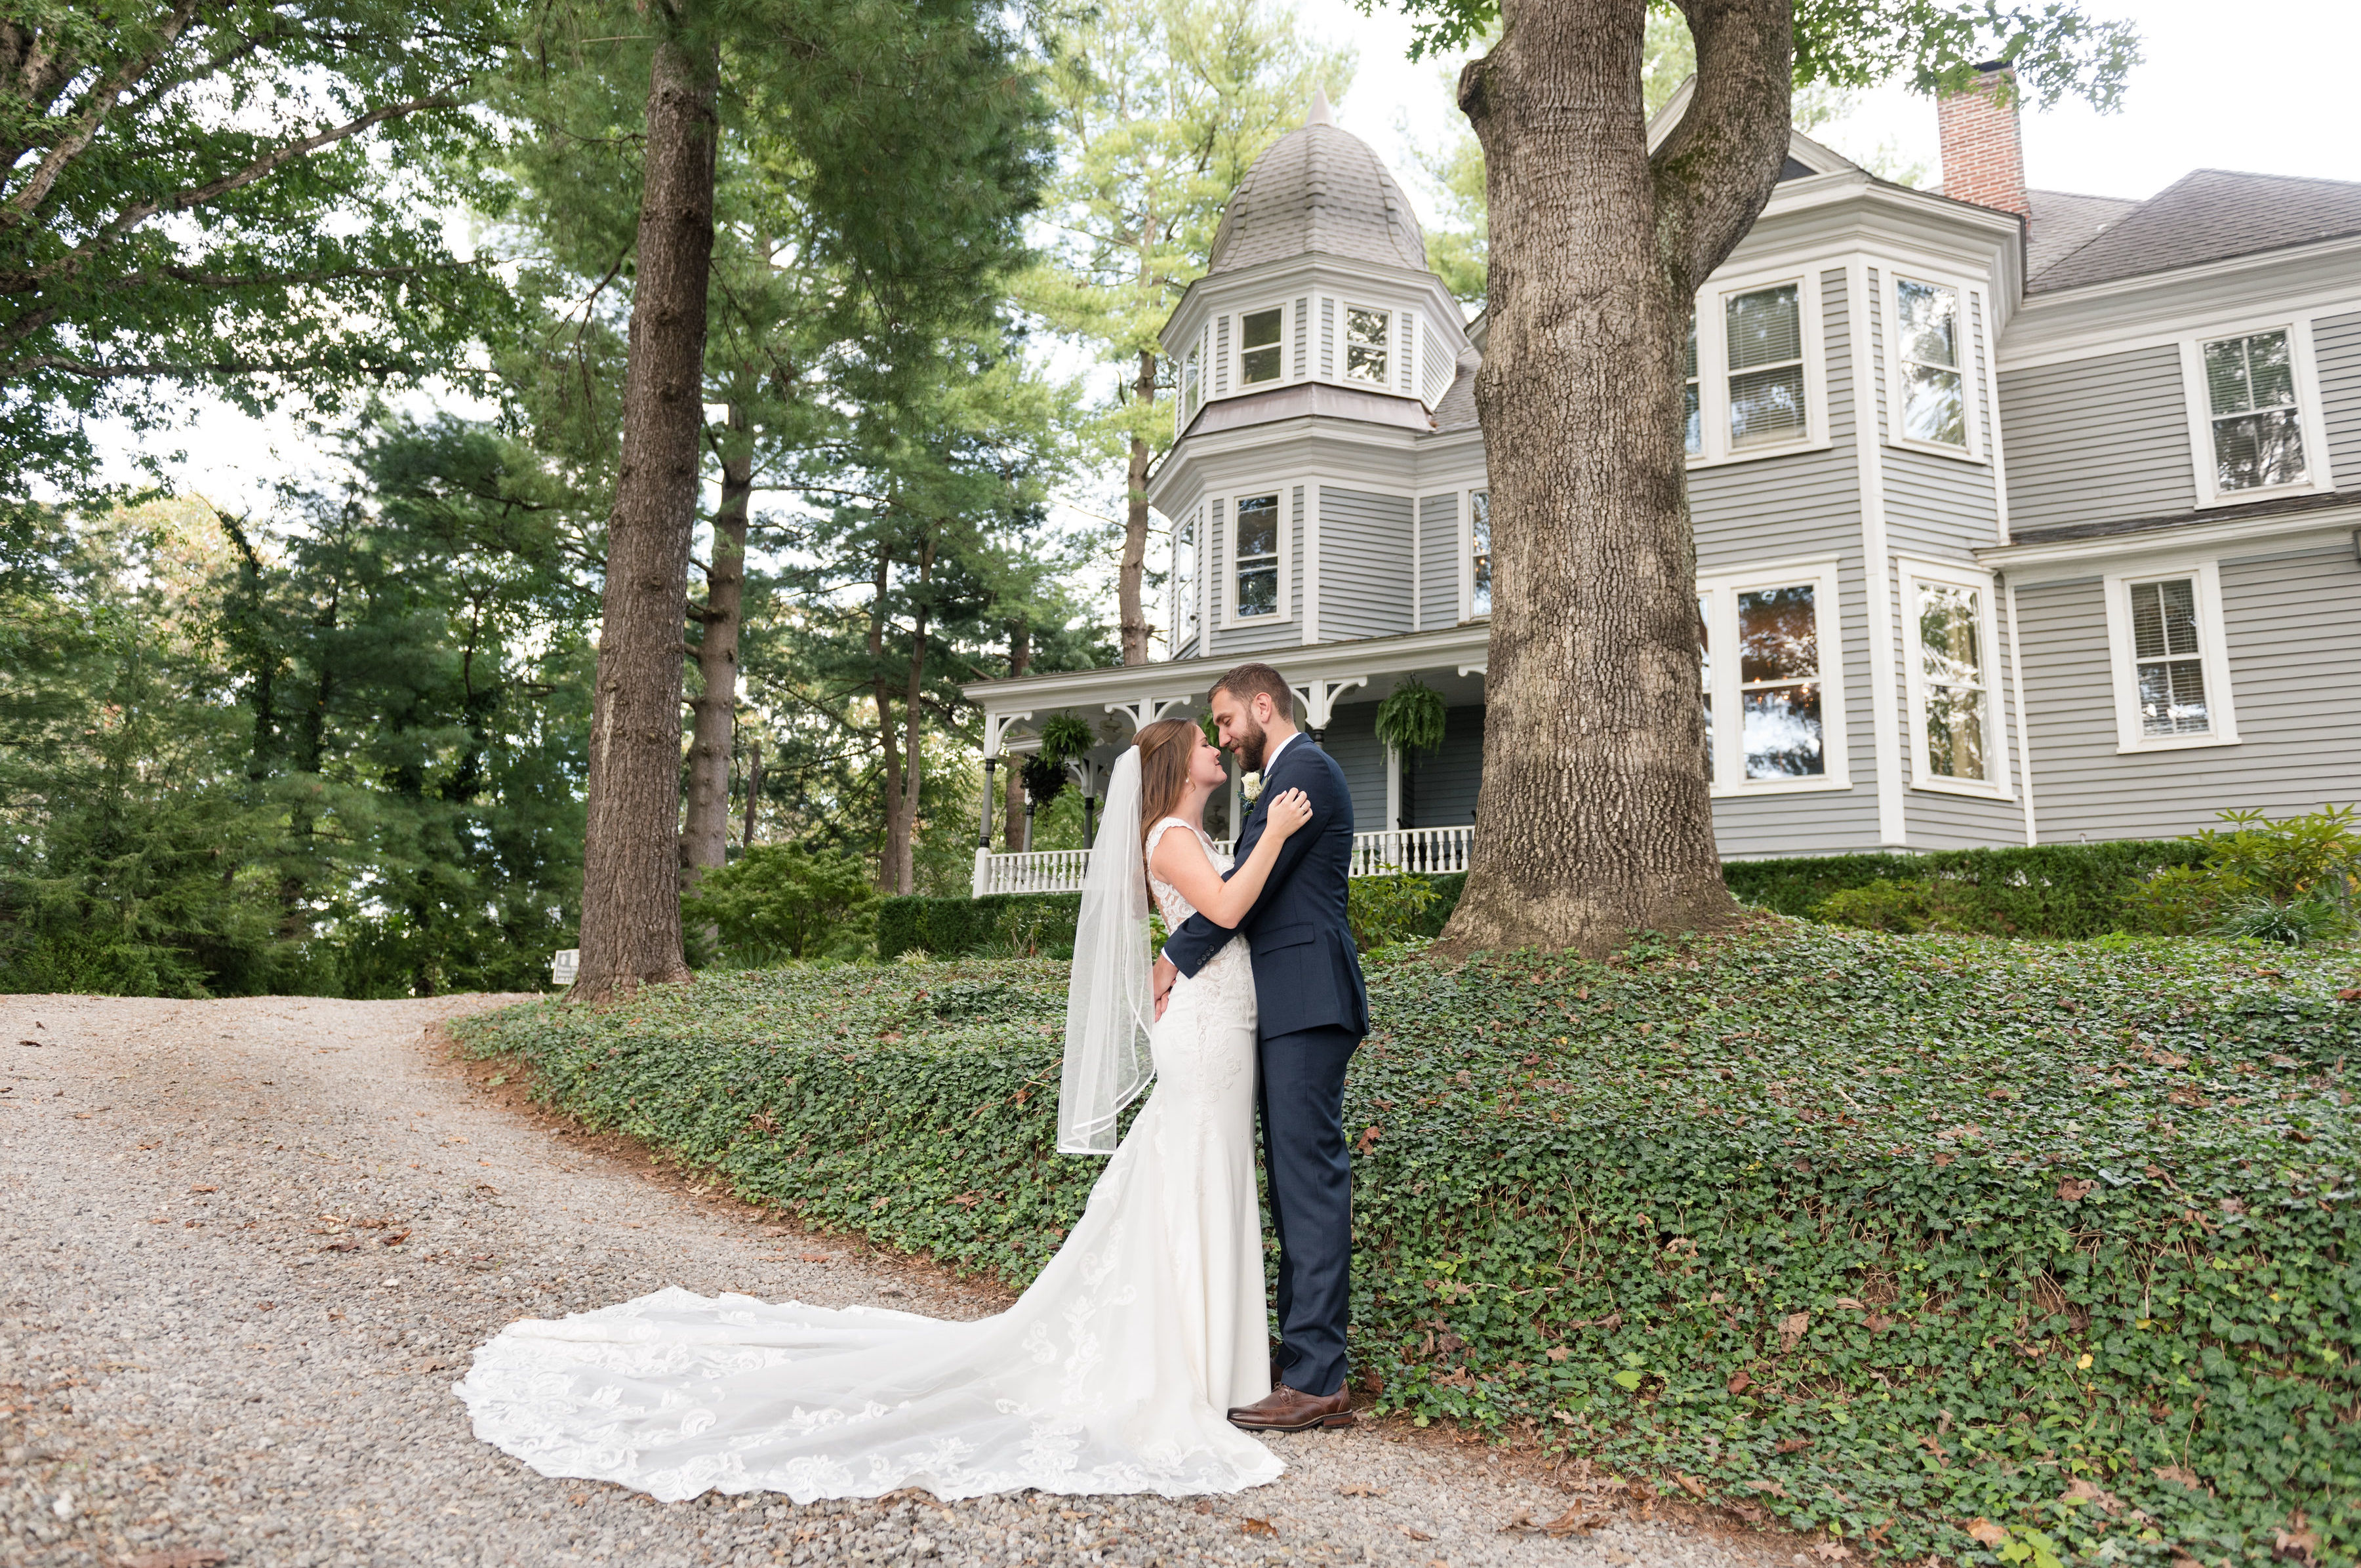 Intimate Asheville Nc Wedding Venue Biltmore Village Inn B B